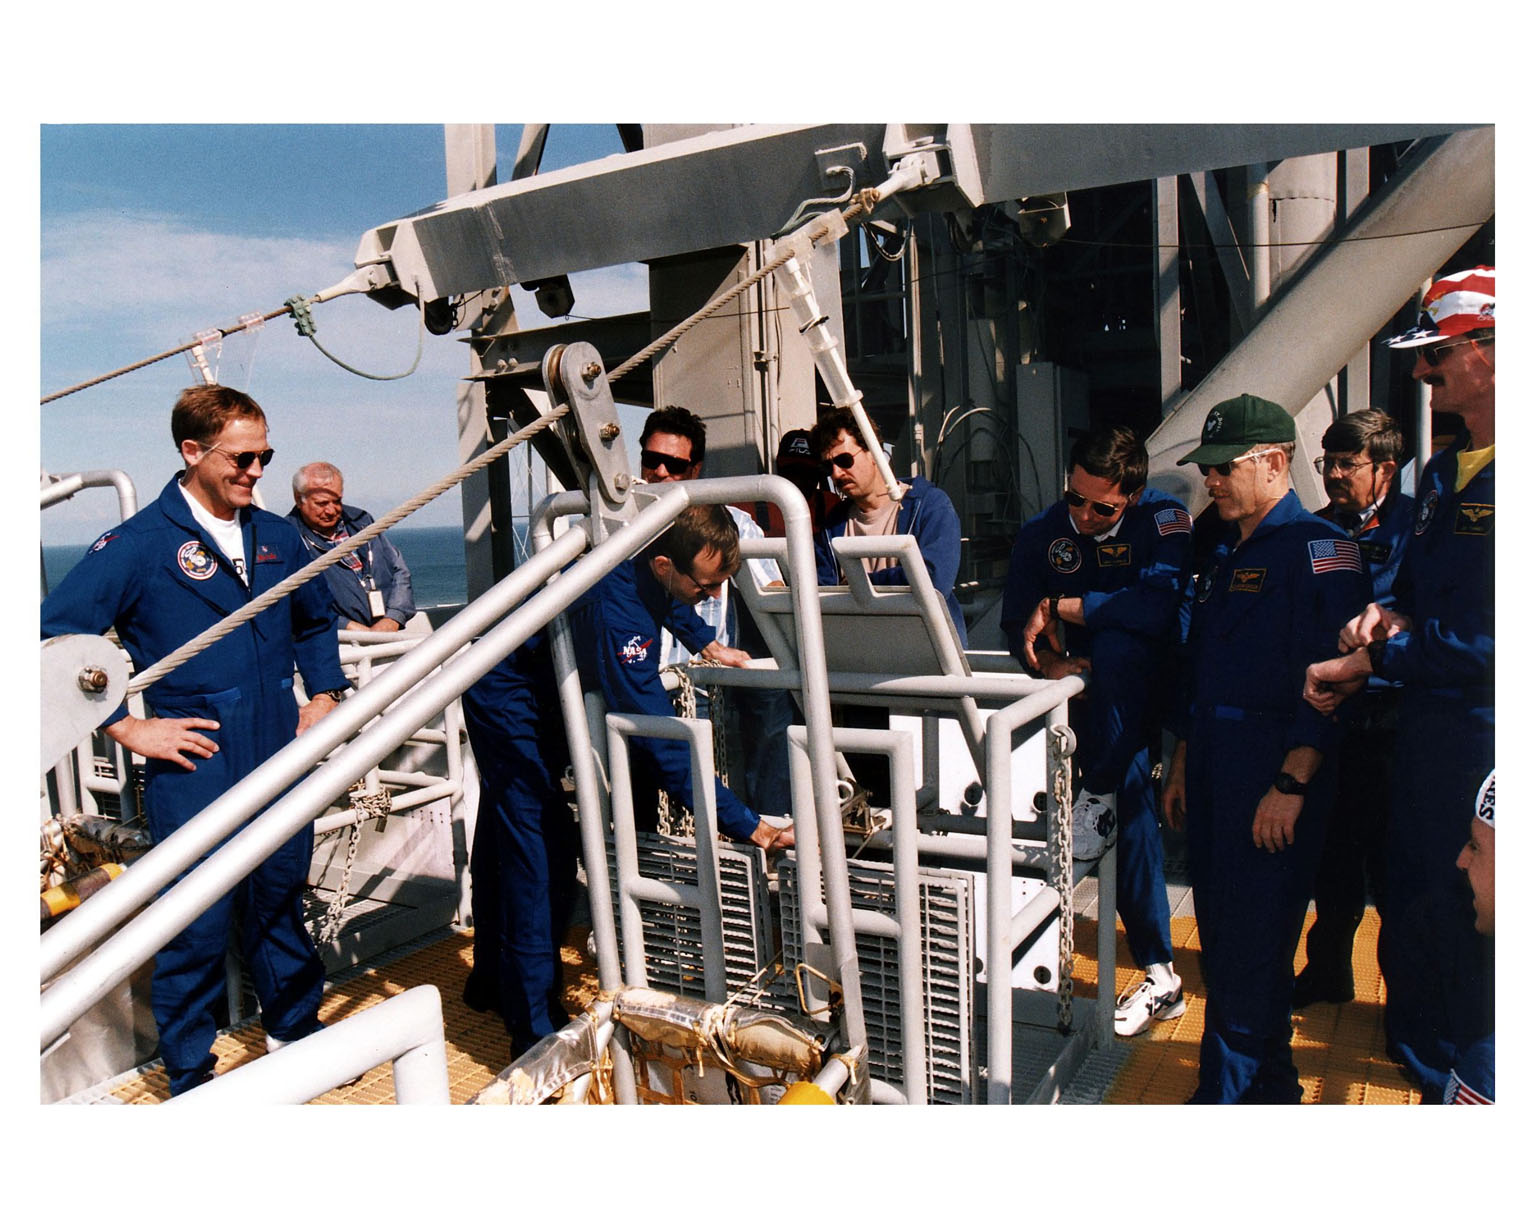 """KENNEDY SPACE CENTER, Fla. --STS-82 crew members and other onlookers at Launch Pad 39A watch as STS-82 Mission Specialist Steven L. Smith becomes familiar with operation of the slidewire baskets. The slidewire baskets are part of the emergency egress system at the pad. The crew are at KSC to participate in the Terminal Countdown Demonstration Test (TCDT), a dress rehearsal for launch. In their blue flight suits, from left, are Payload Commander Mark C. Lee, Smith, Mission Specialist Gregory J. Harbaugh, Mission Commander Kenneth D. Bowersox and Mission Specialist Joseph R. """"Joe"""" Tanner. The seven-member STS-82 crew will conduct the second Hubble Space Telescope servicing mission. Liftoff of the 10-day flight is scheduled Feb. 11"""